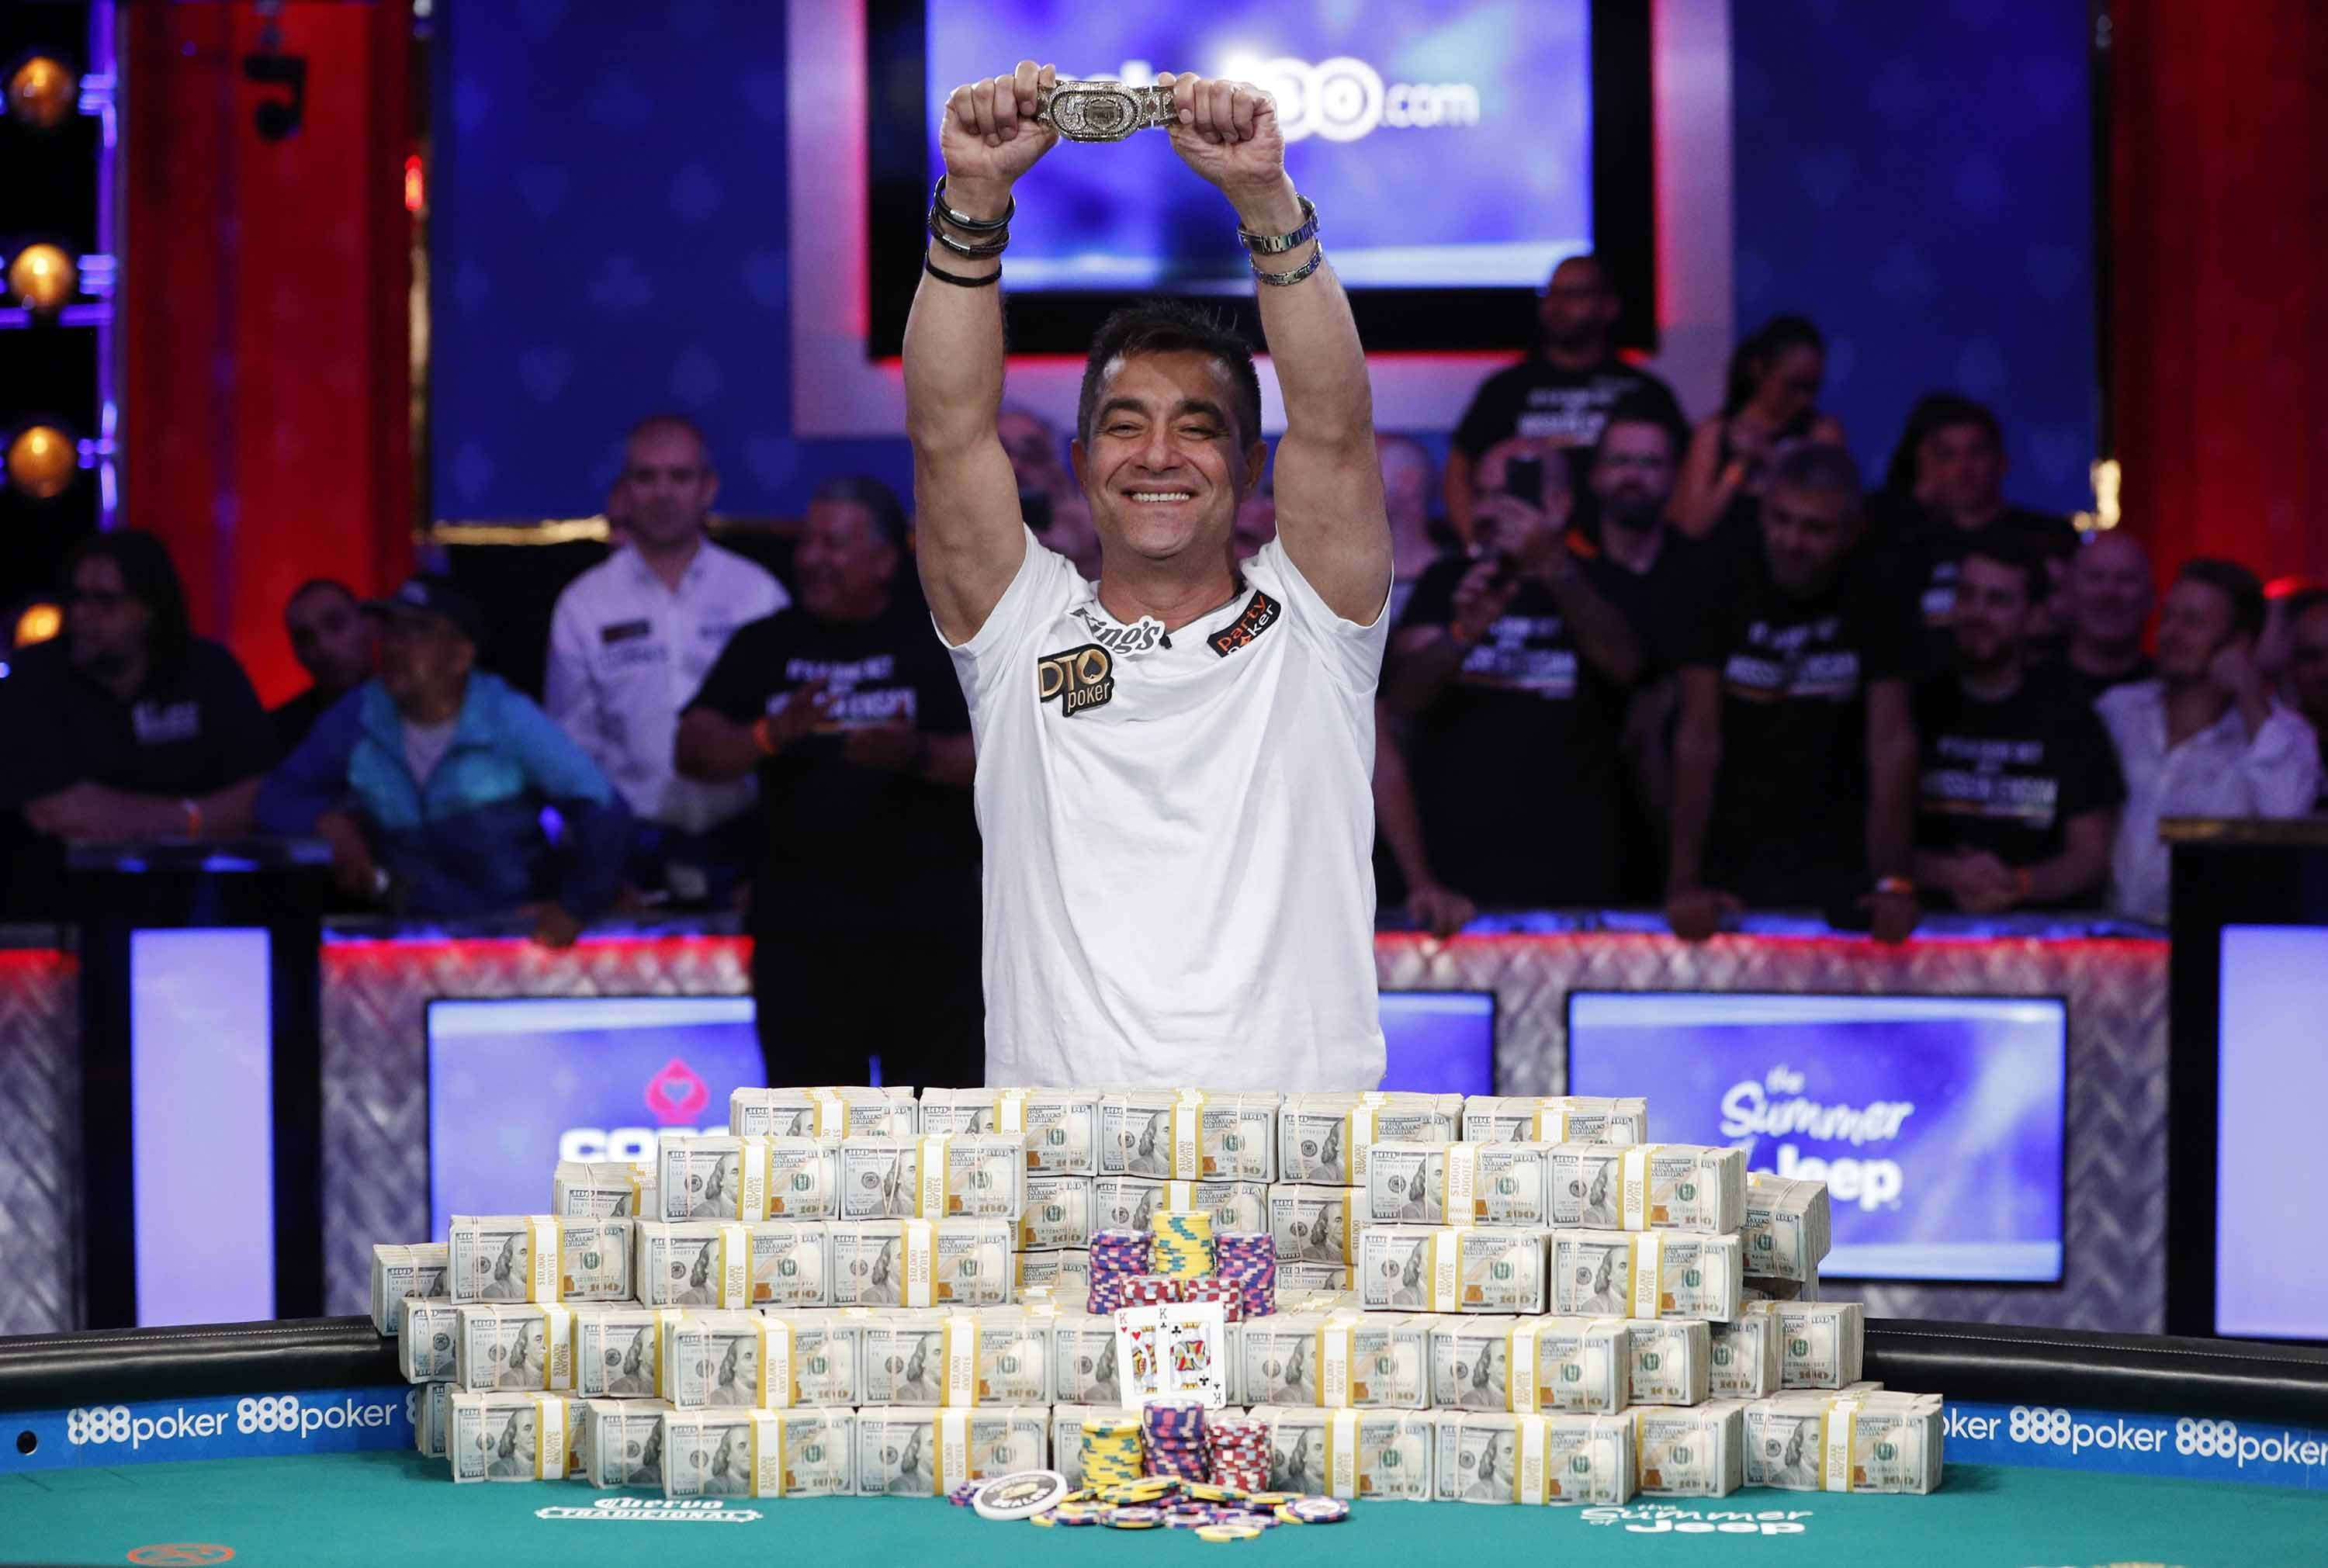 Hossein Ensan wins the 2019 World Series of Poker main event and takes home $10 million